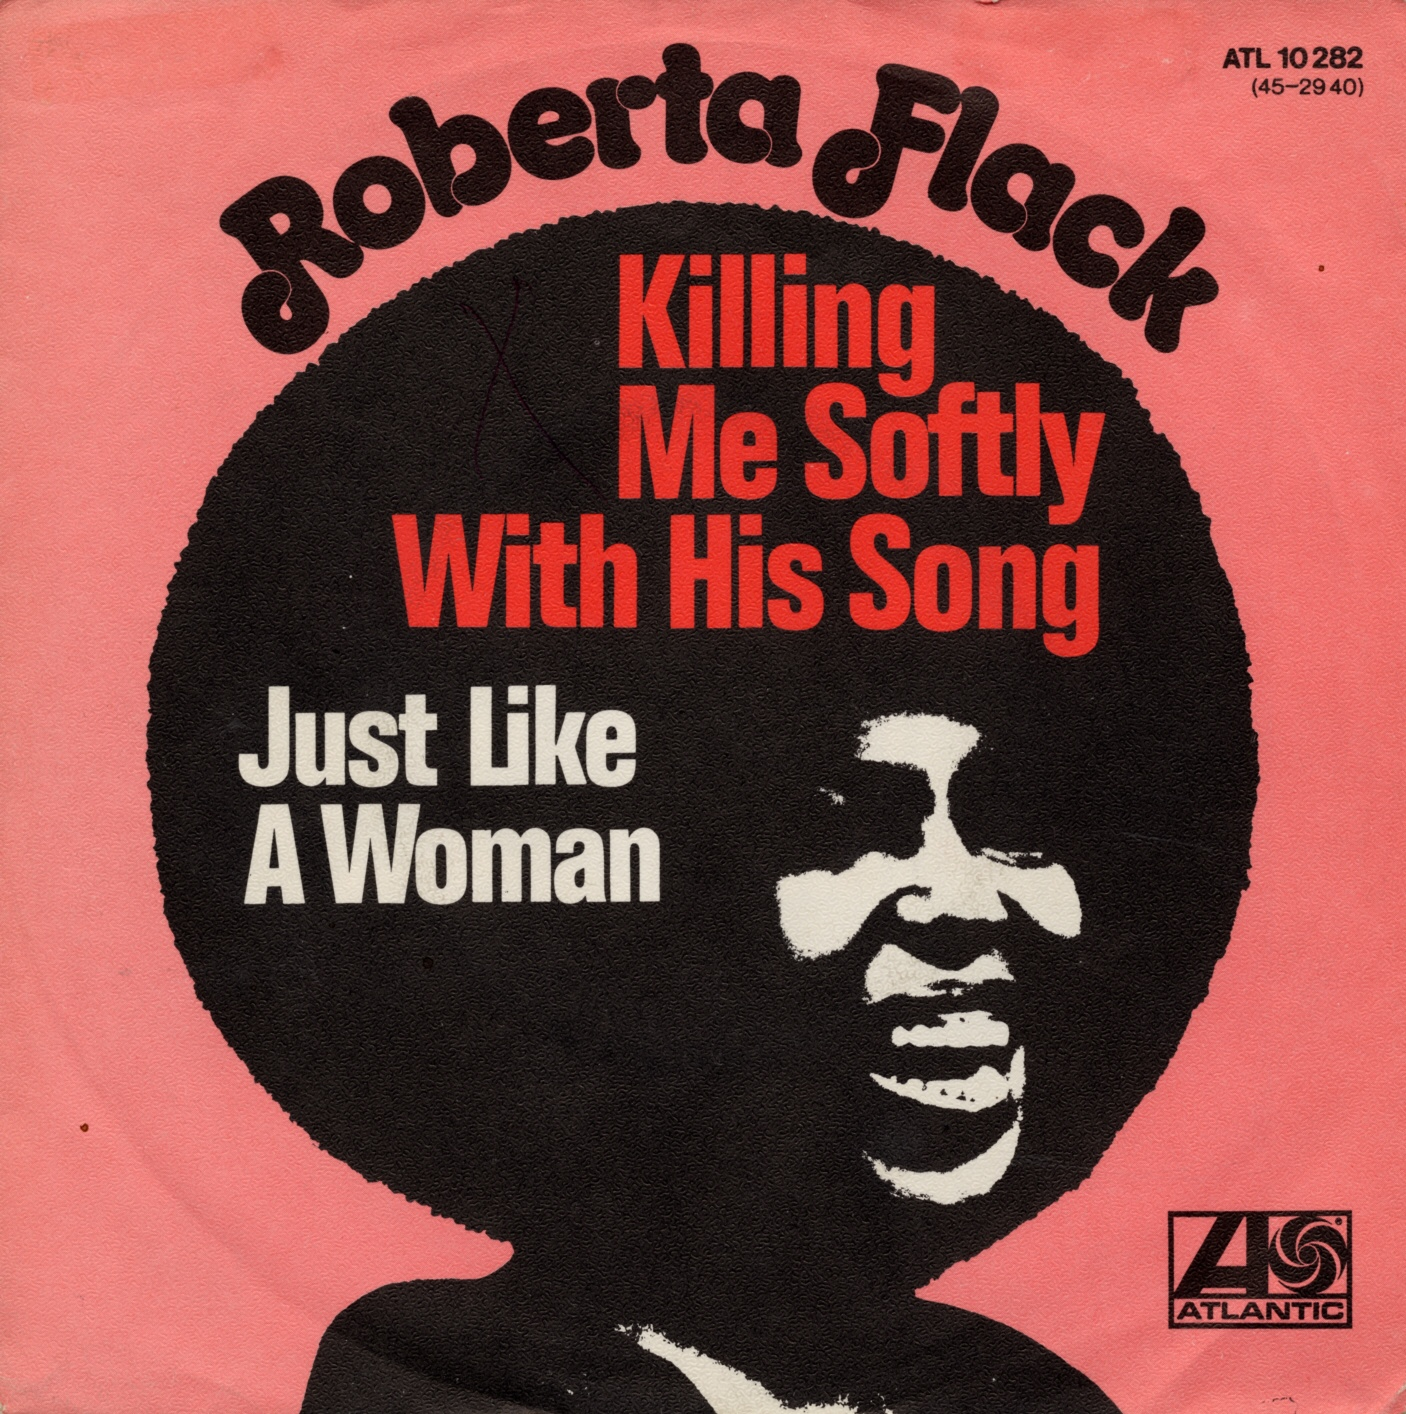 Cover: Killing me softly with his song, Roberta Flack